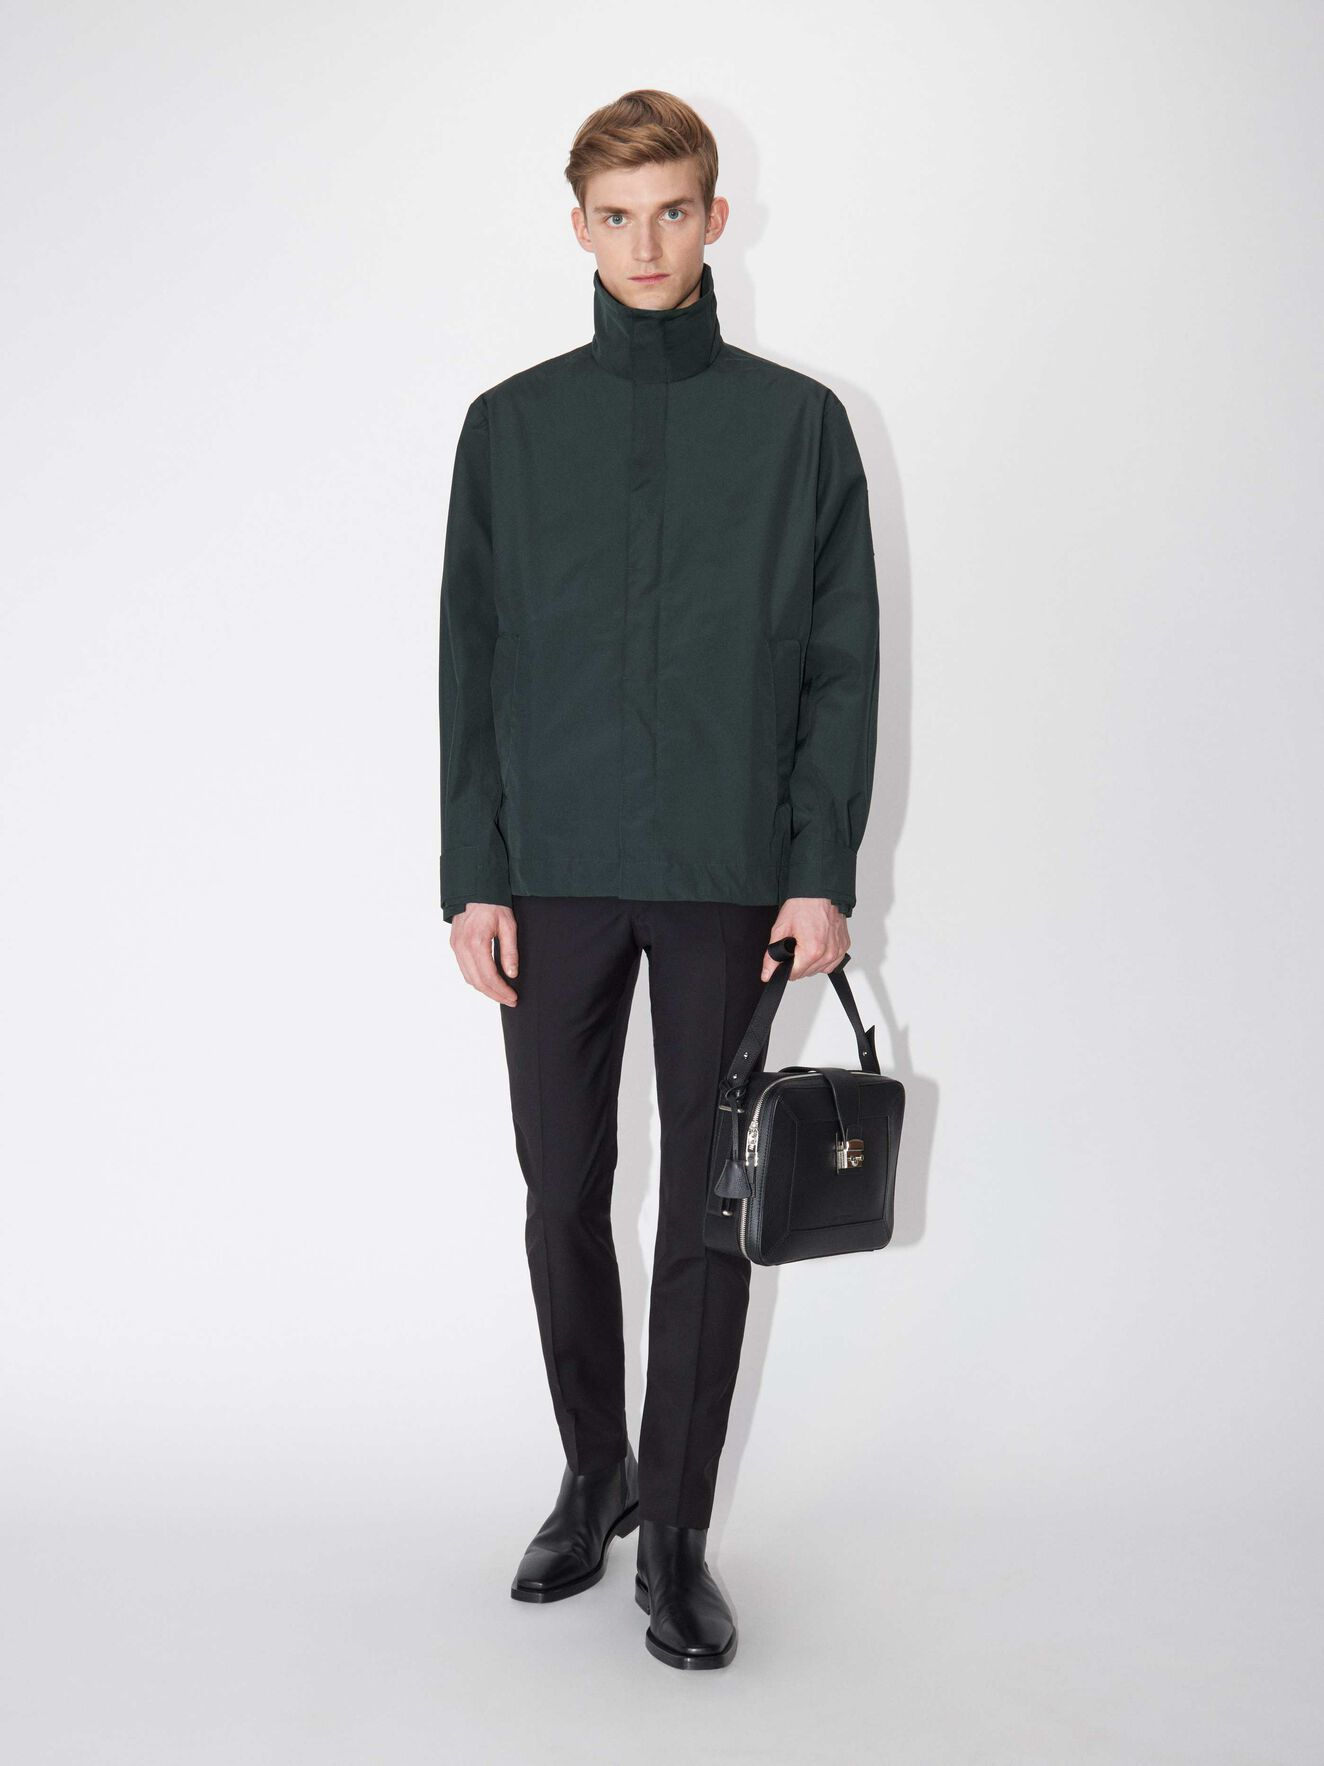 Orvil Jacket in Scarab Green from Tiger of Sweden